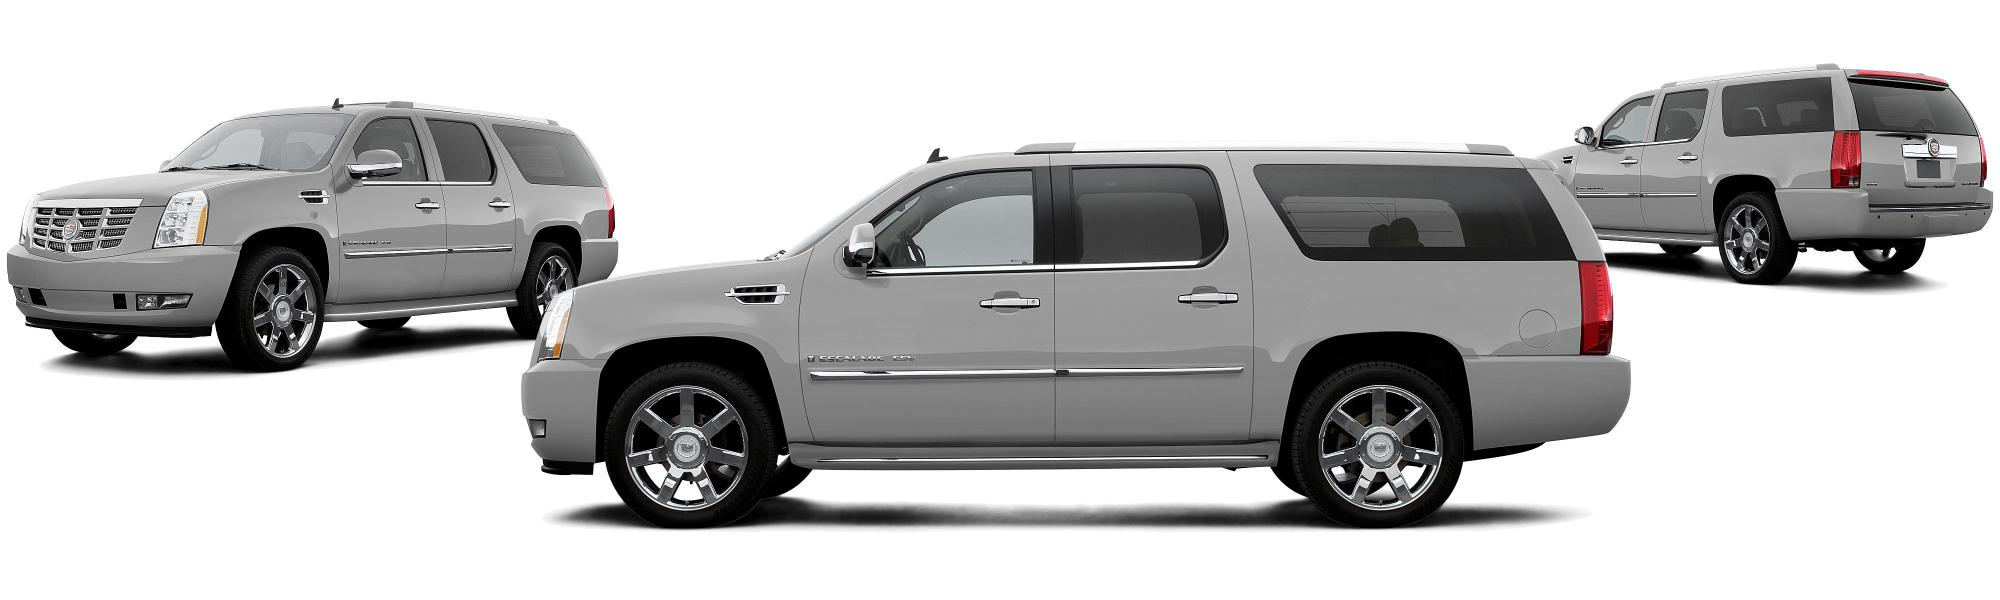 hight resolution of  rollover roof rail caution continued have about location airbags listings find bestlocal deals like comment diagram download your cadillac escalade